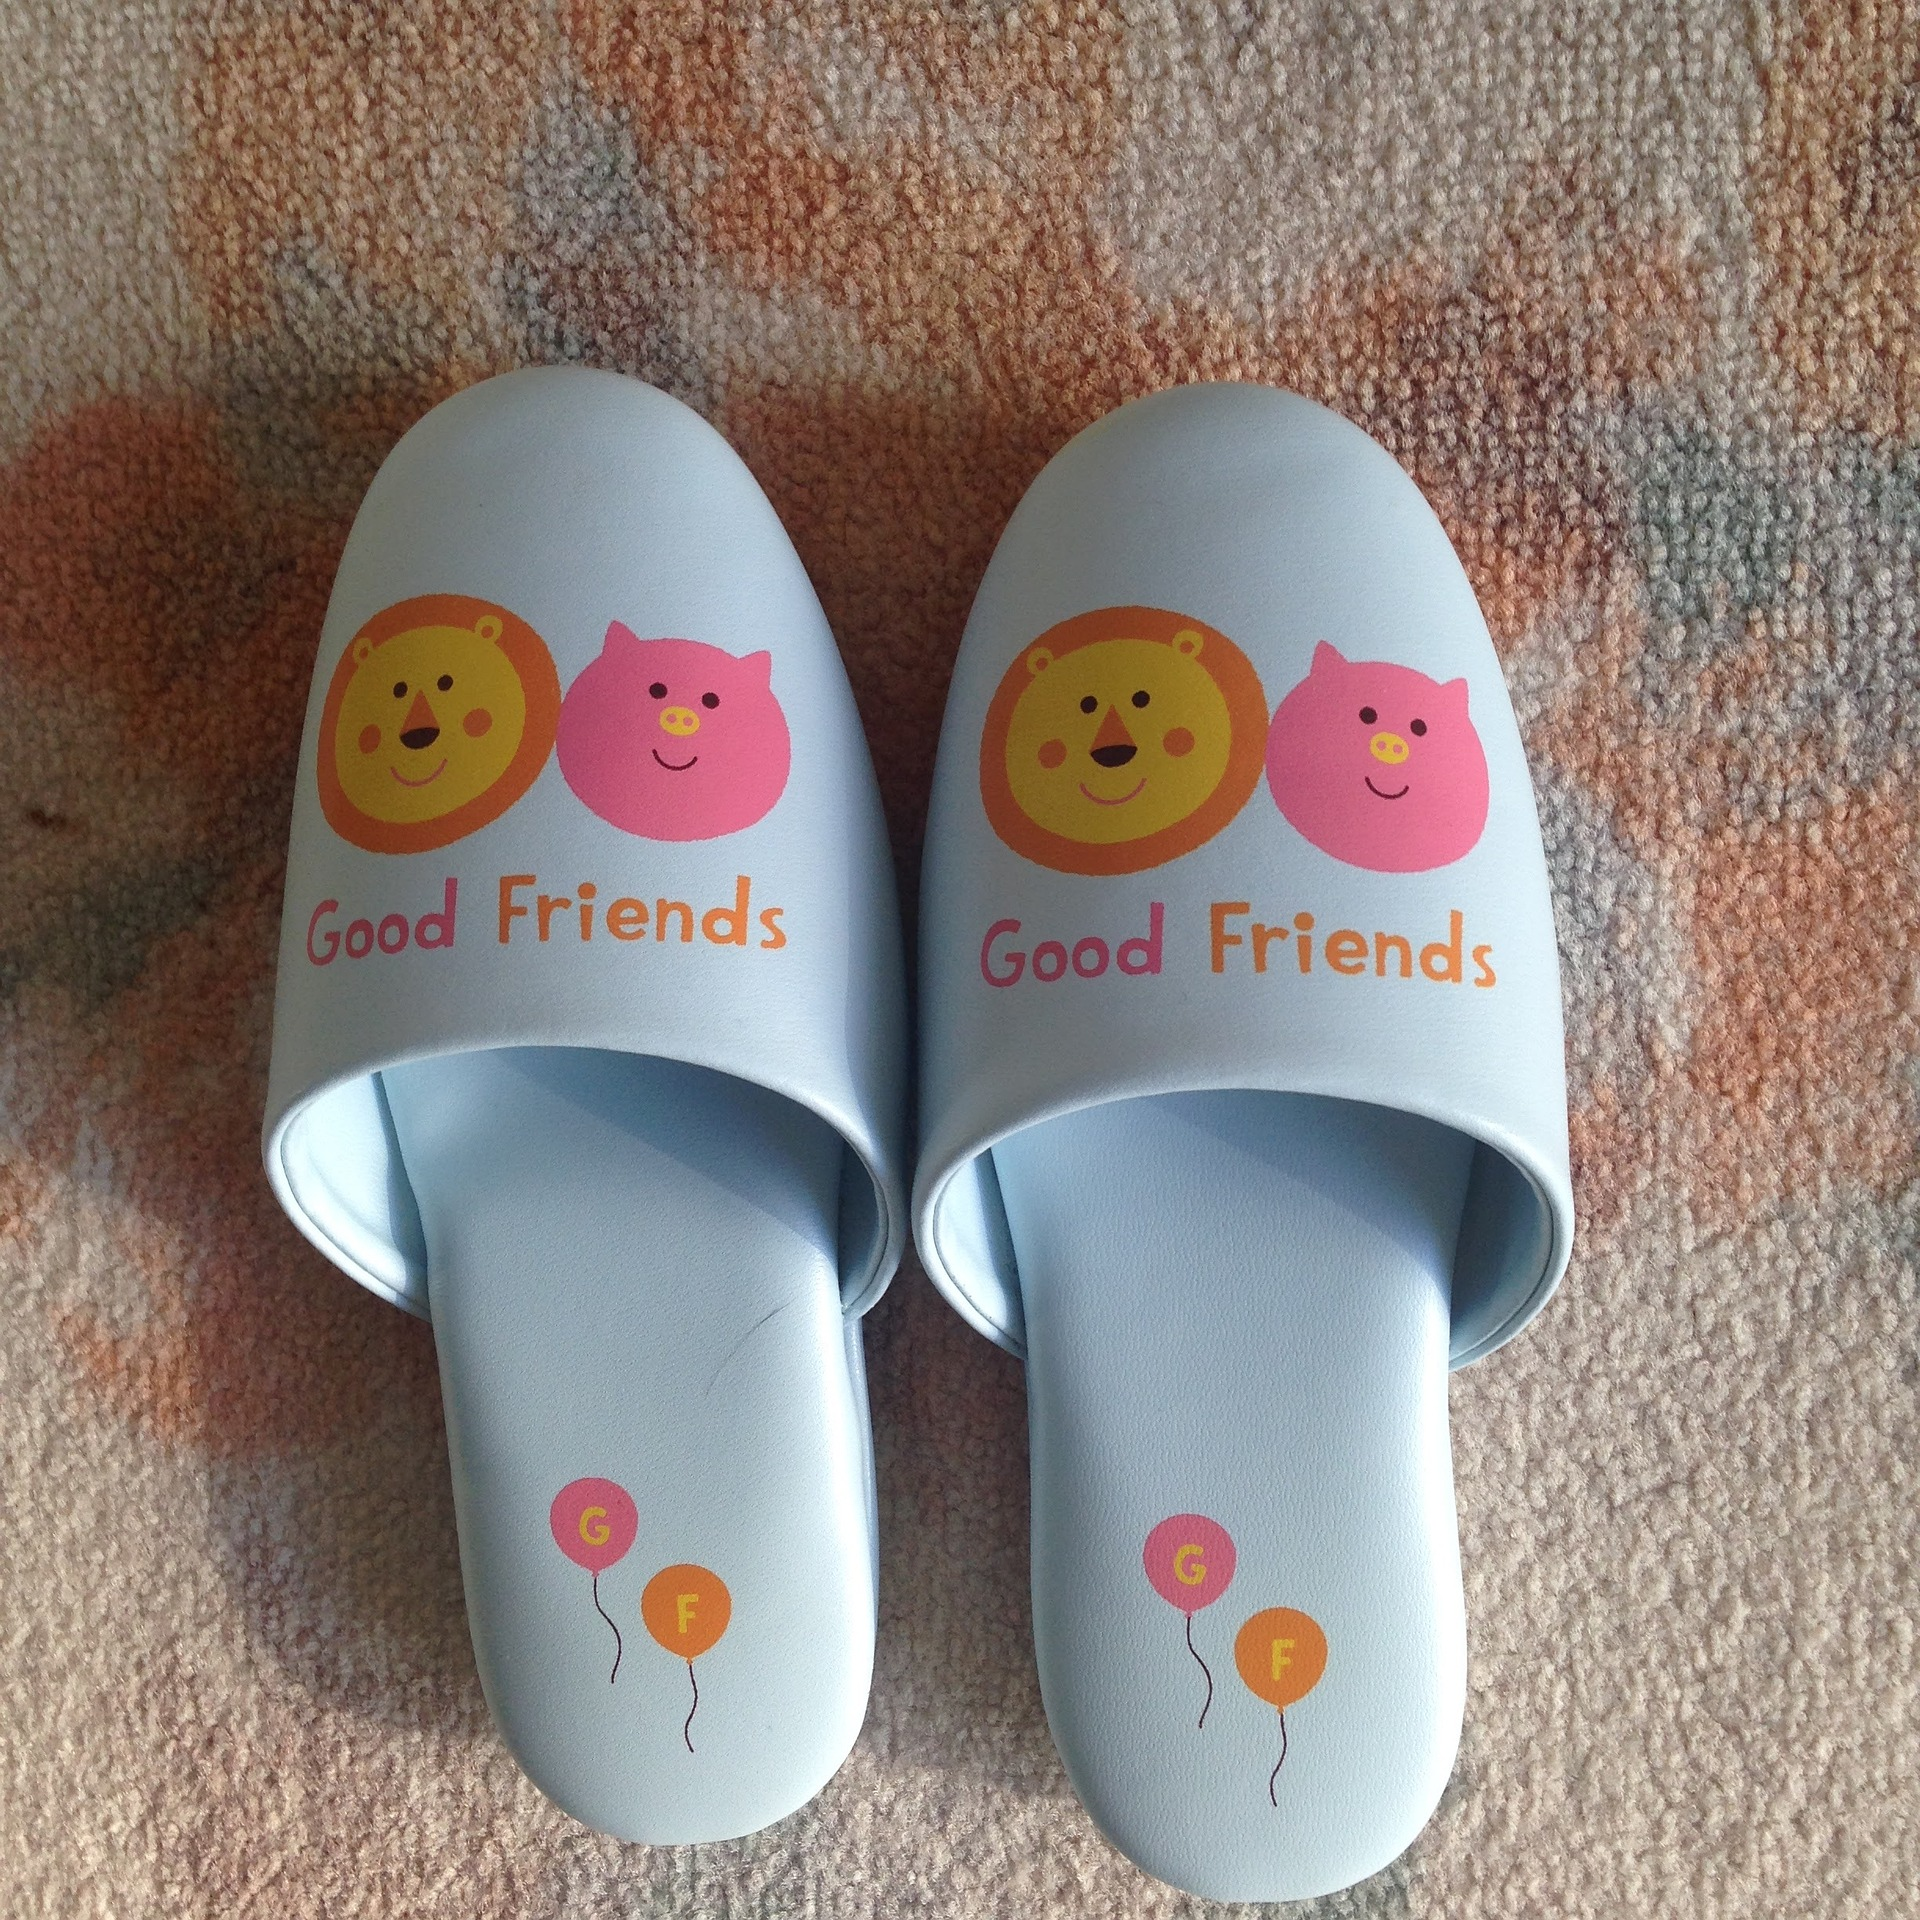 slippers-1432817_1920